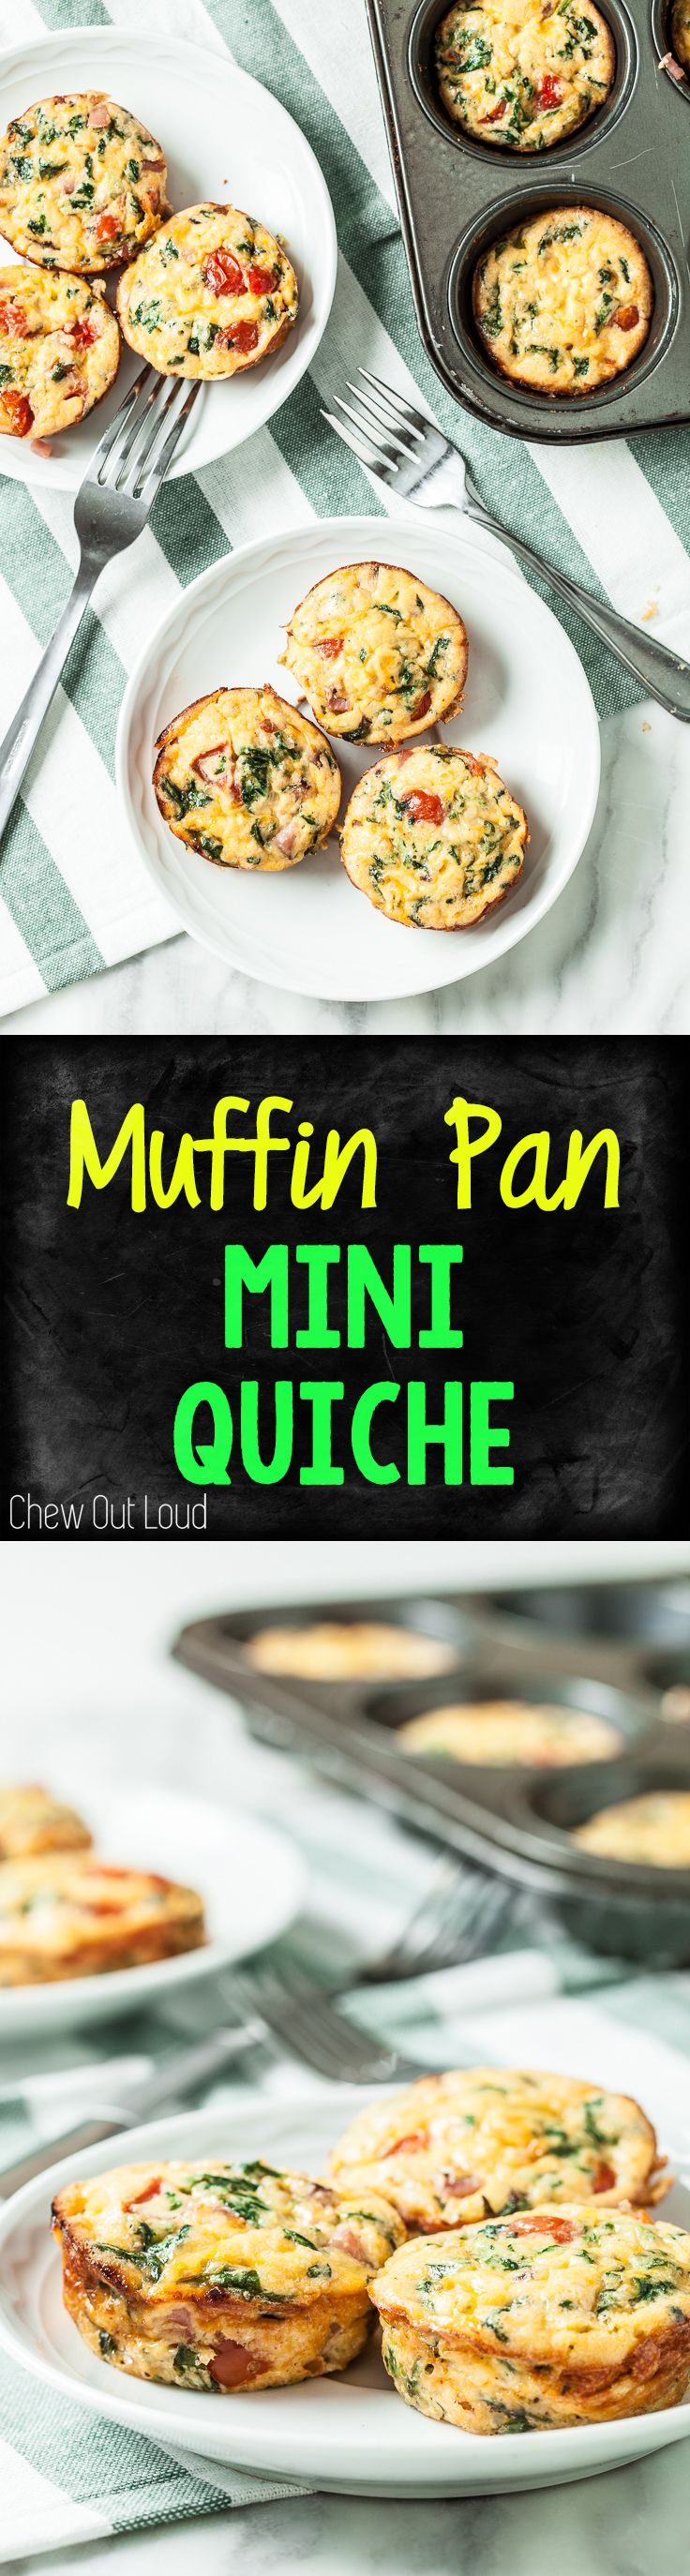 Muffin Pan Mini Quiche. Eggs, spinach, tomatoes, cheese...all the brunch in one muffin! #breakfast #brunch #quiche www.chewoutloud.com